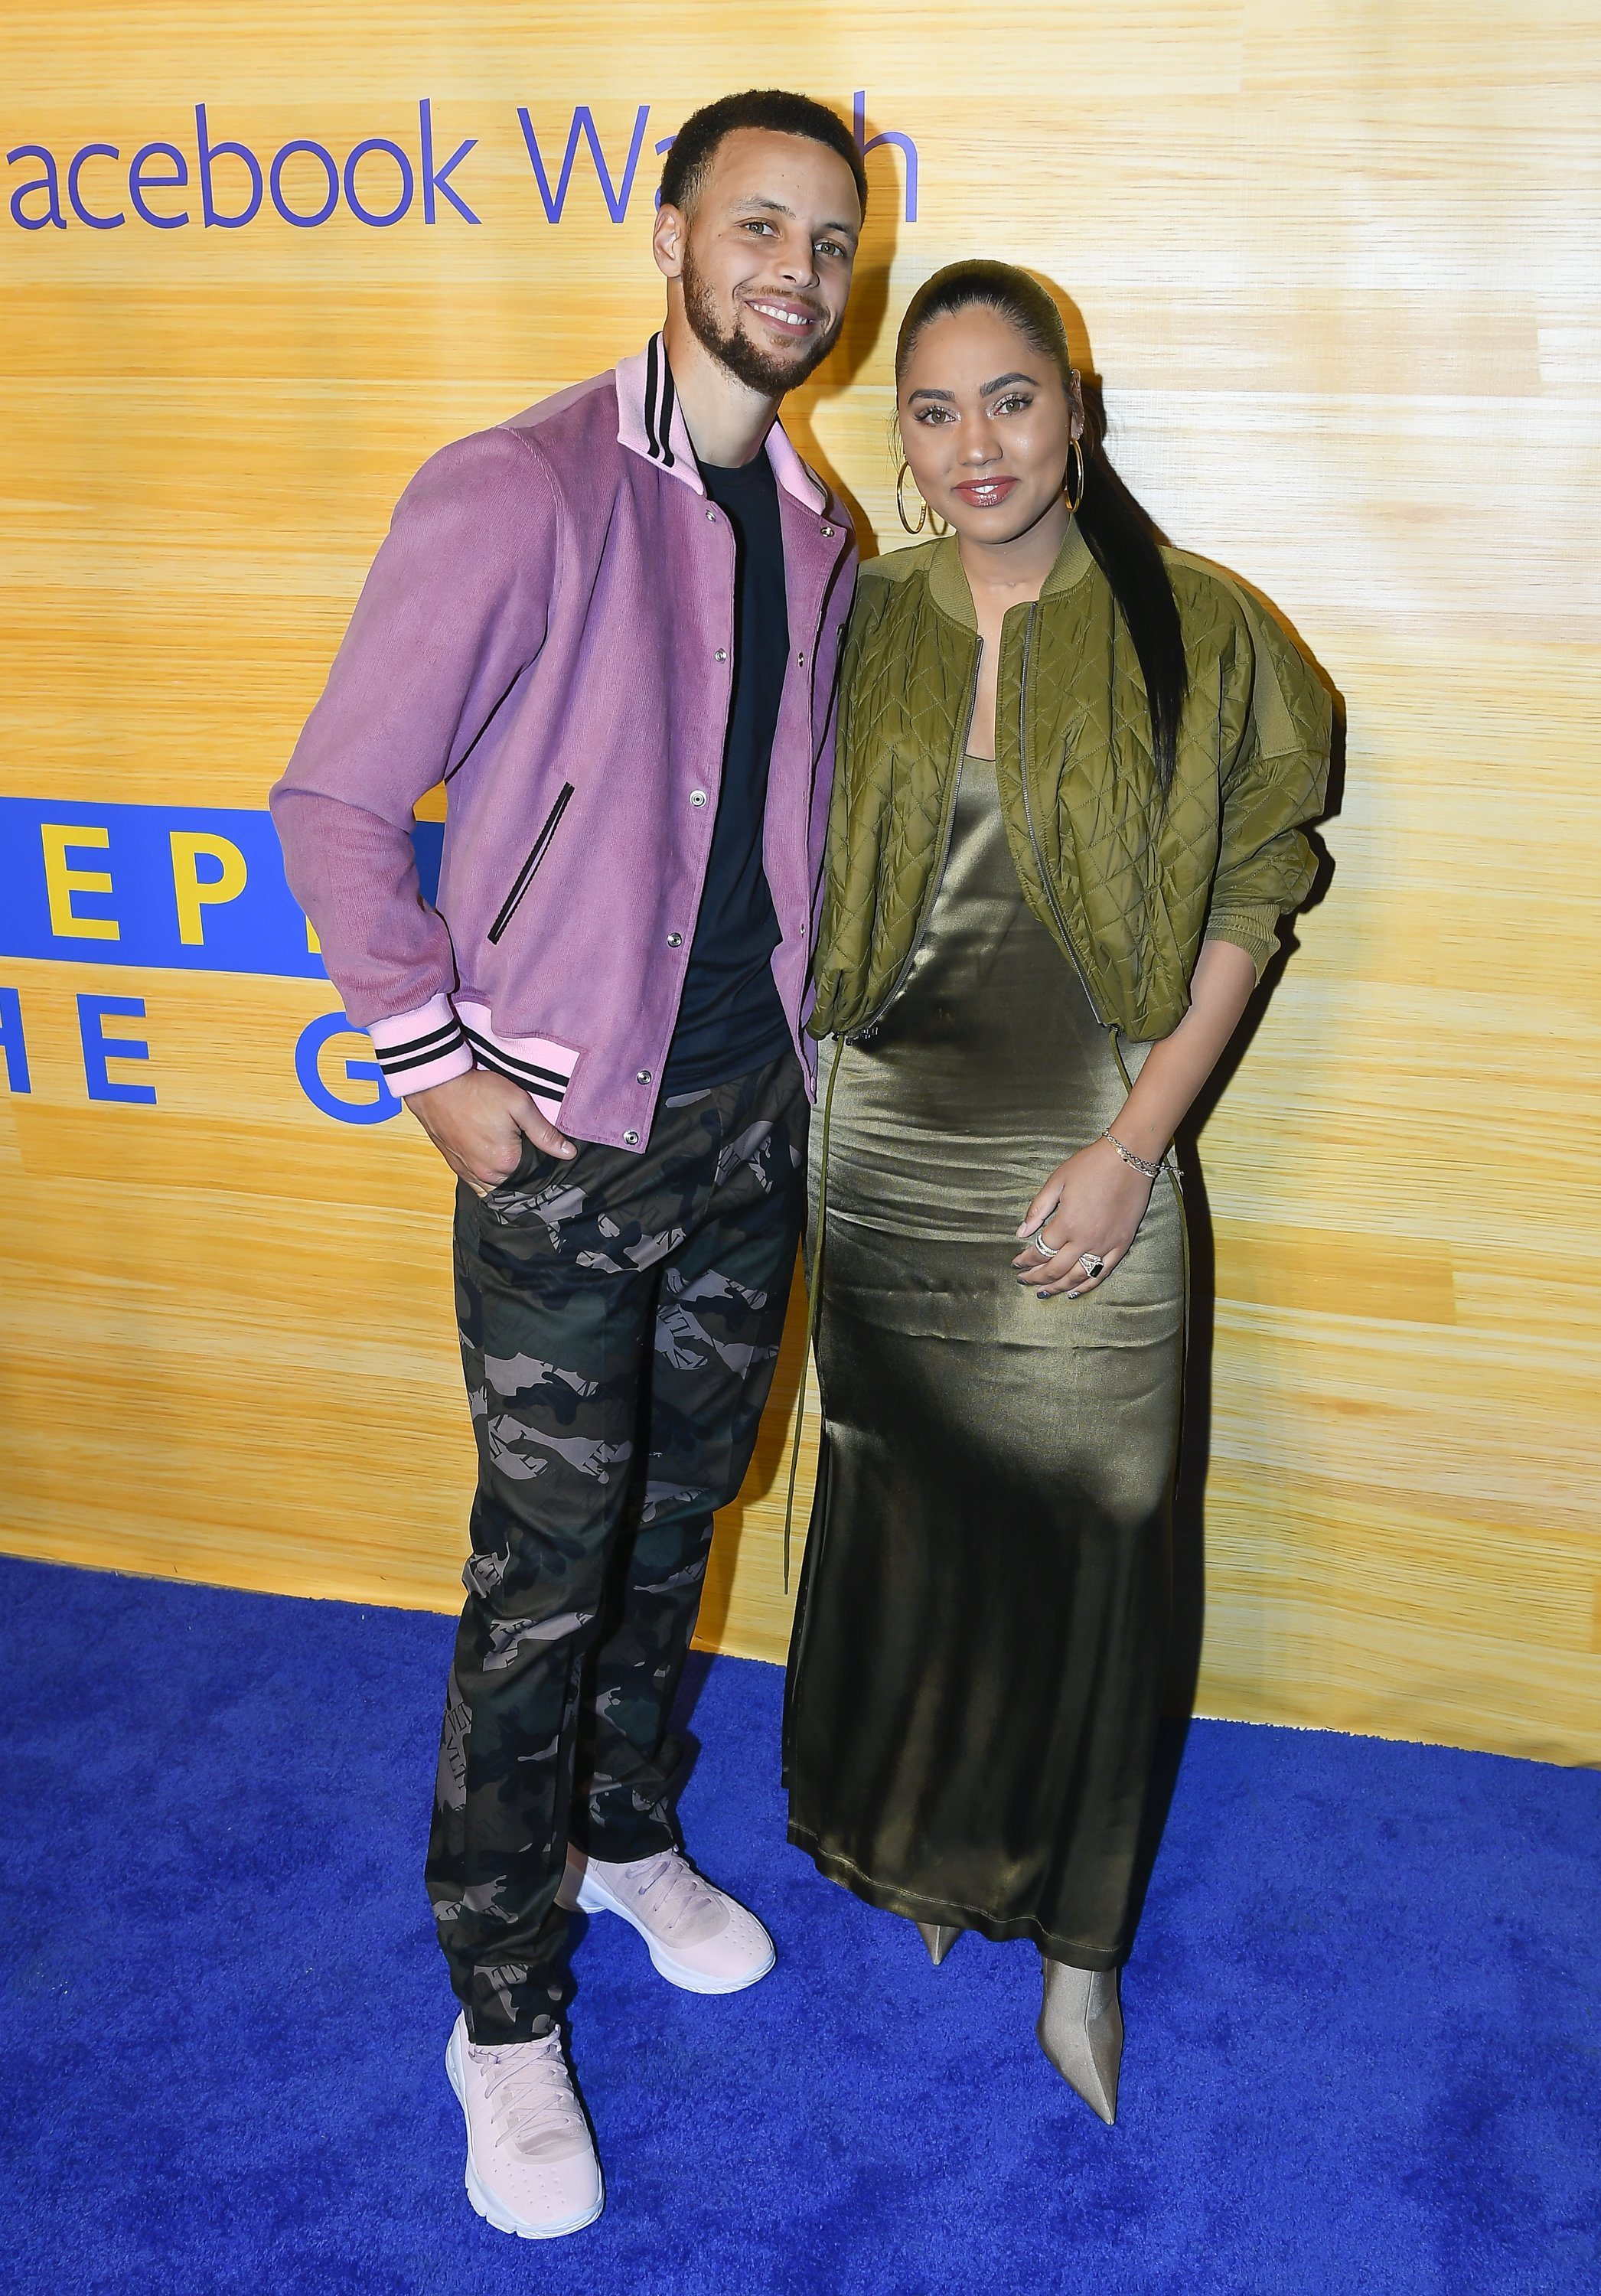 """Stephen Curry and Ayesha Curry attend the """"Stephen Vs The Game"""" Facebook Watch Preview at 16th Street Station on April 1, 2019 in Oakland, California 